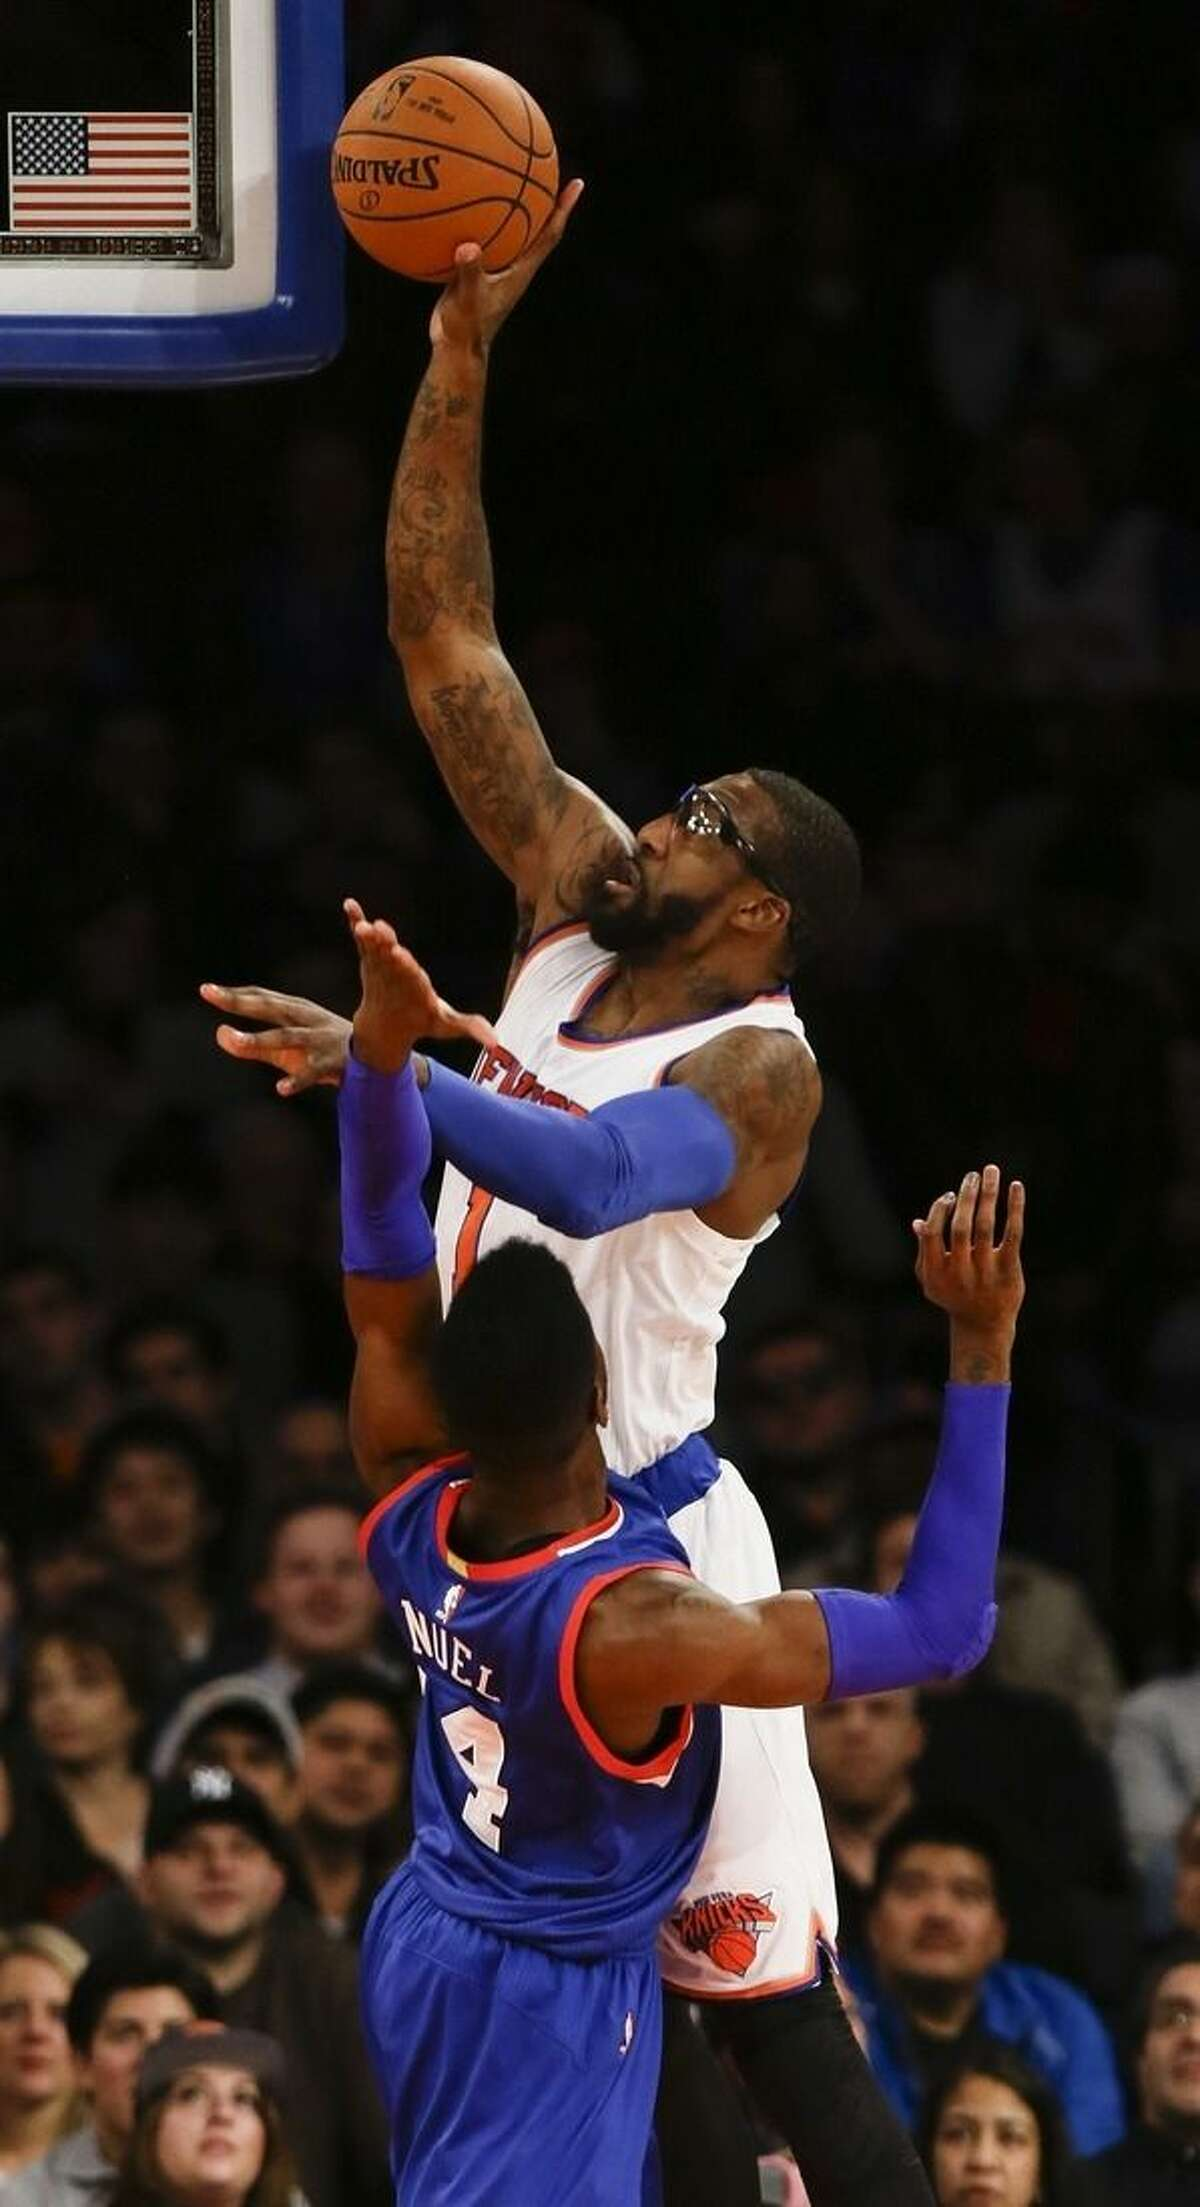 New York Knicks' Amare Stoudemire (1) shoots over Philadelphia 76ers' Nerlens Noel (4) during the first half of an NBA basketball game Saturday, Nov. 22, 2014, in New York. (AP Photo/Frank Franklin II)